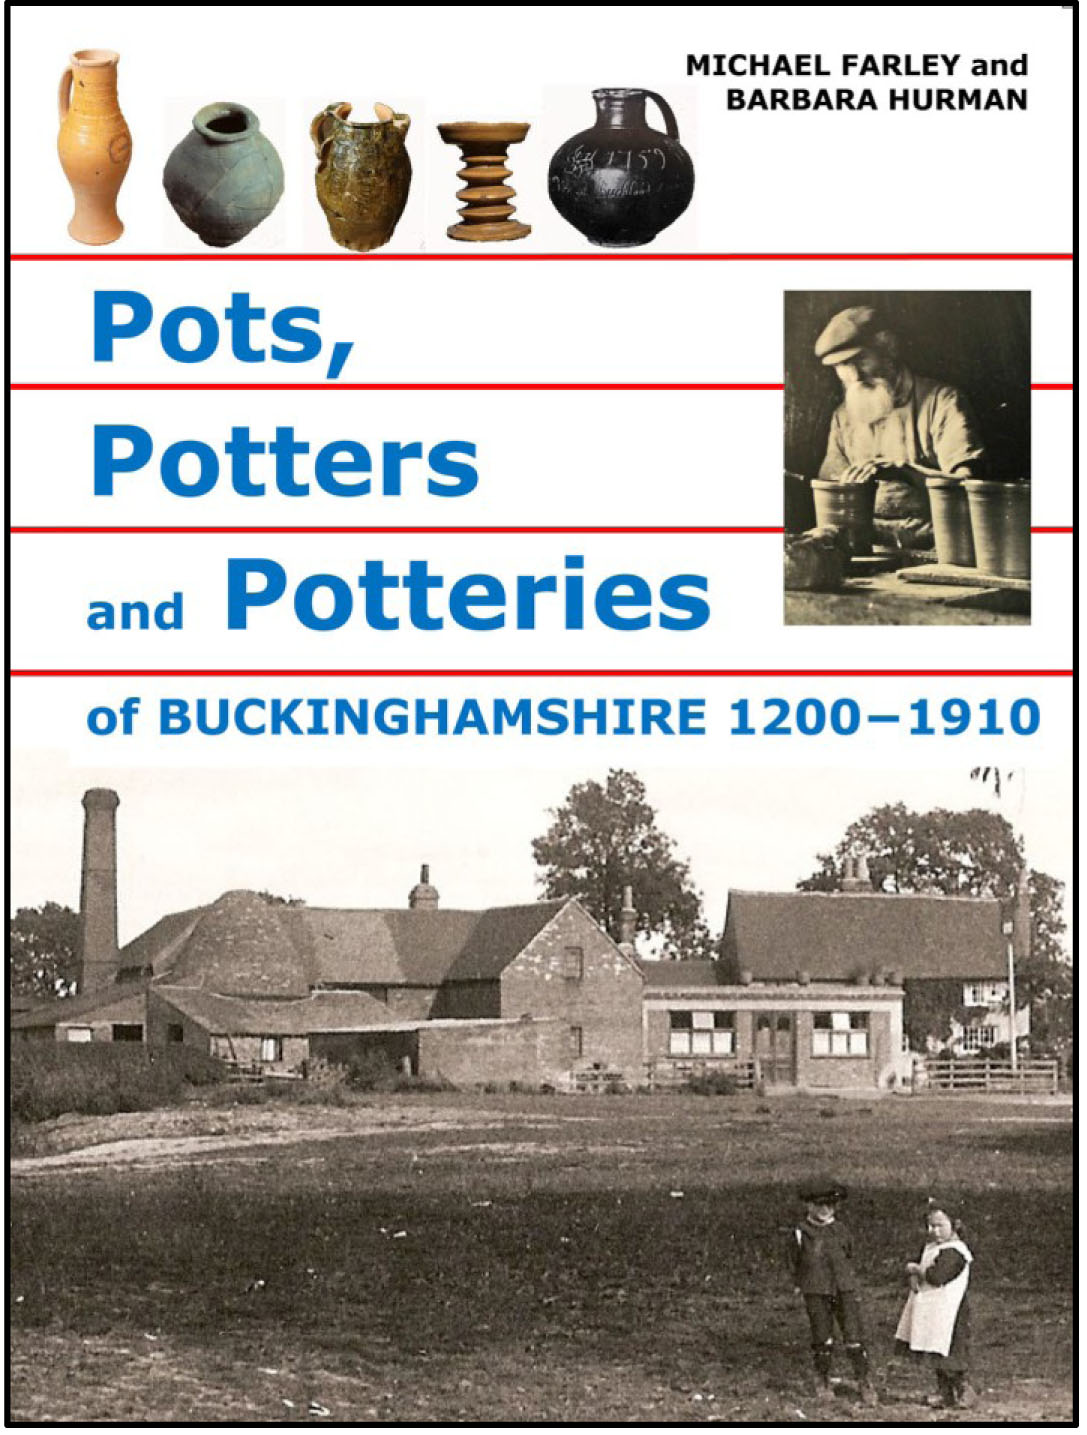 Pots, potters and potteries book cover